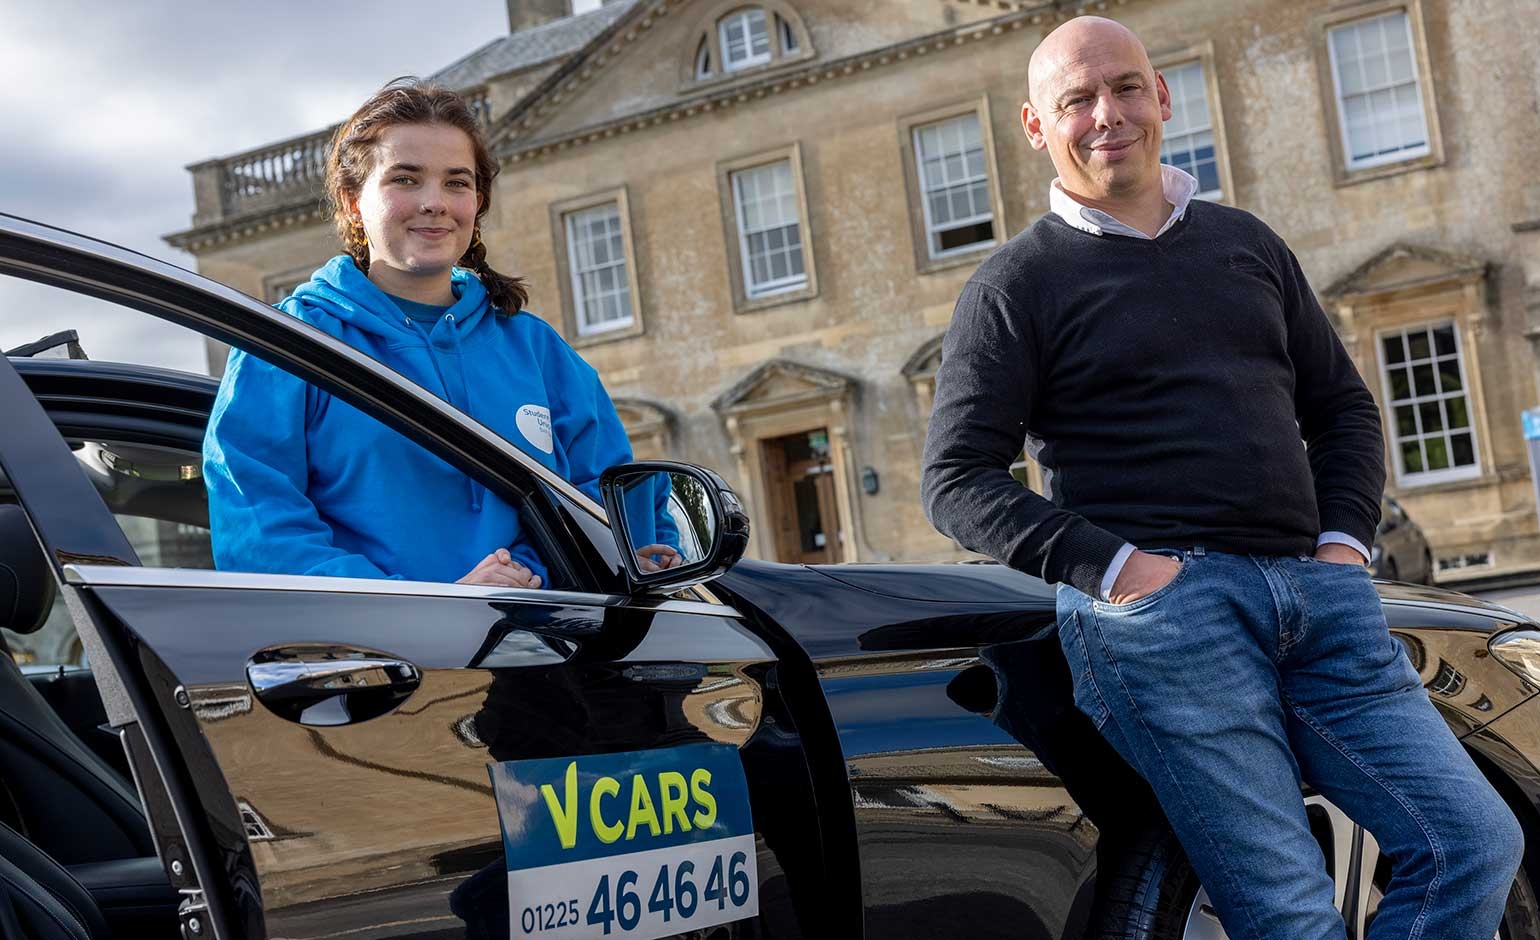 Taxi scheme being offered to help city's students get back home safely